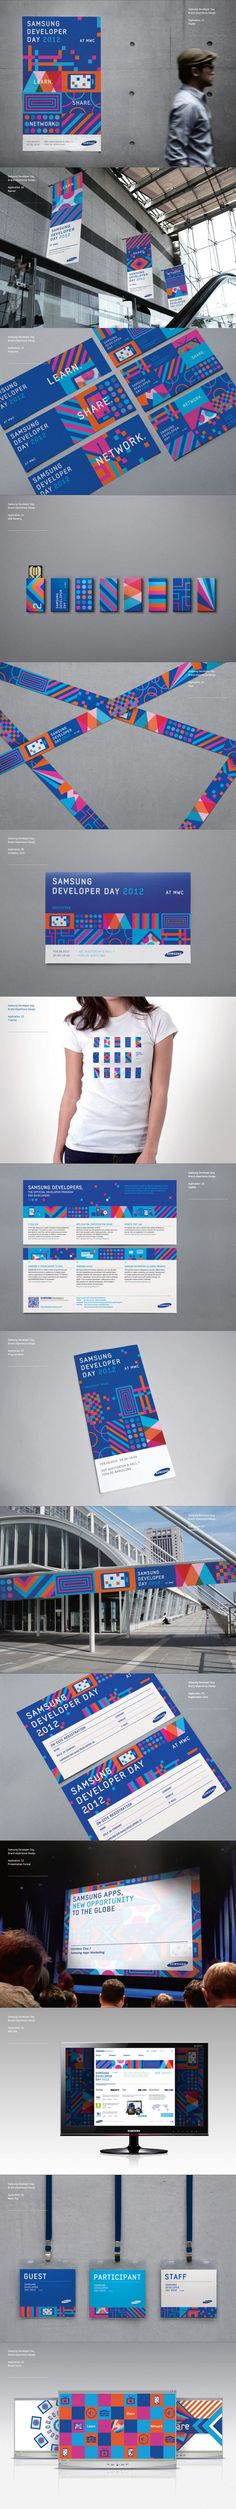 samsung developers brand experience design